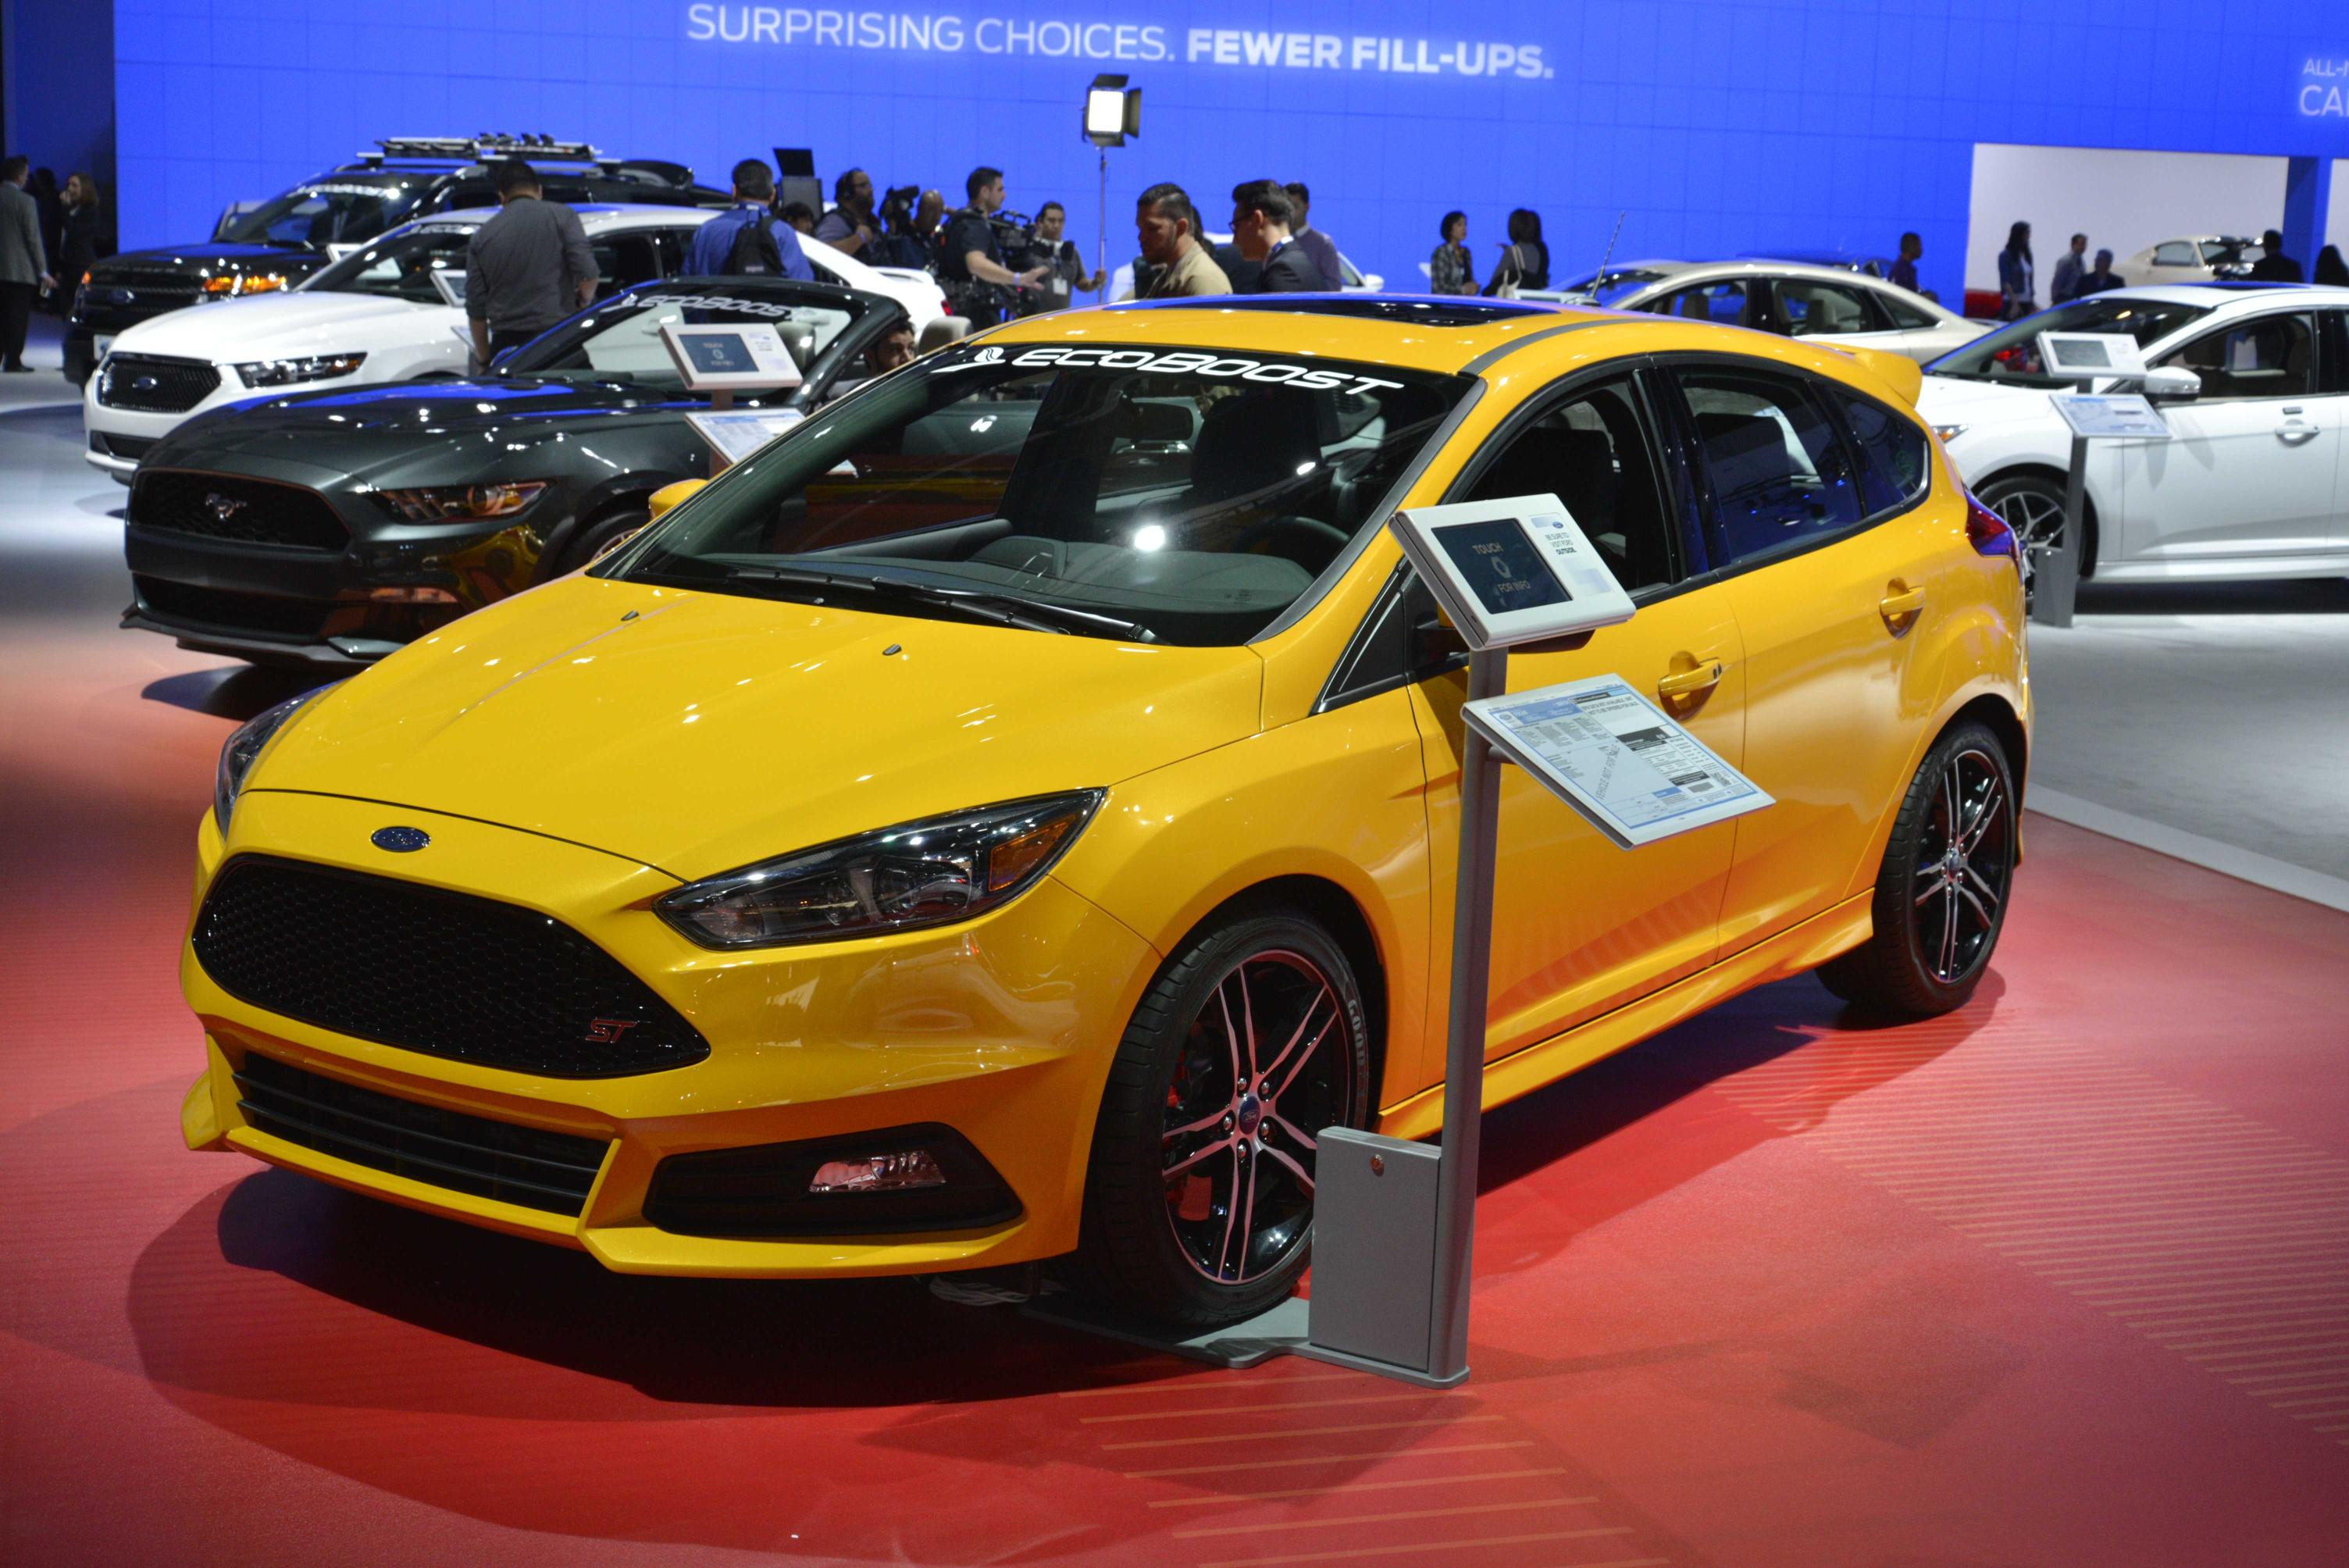 photo ford focus iii st 250 ch berline 2014 m diatheque. Black Bedroom Furniture Sets. Home Design Ideas